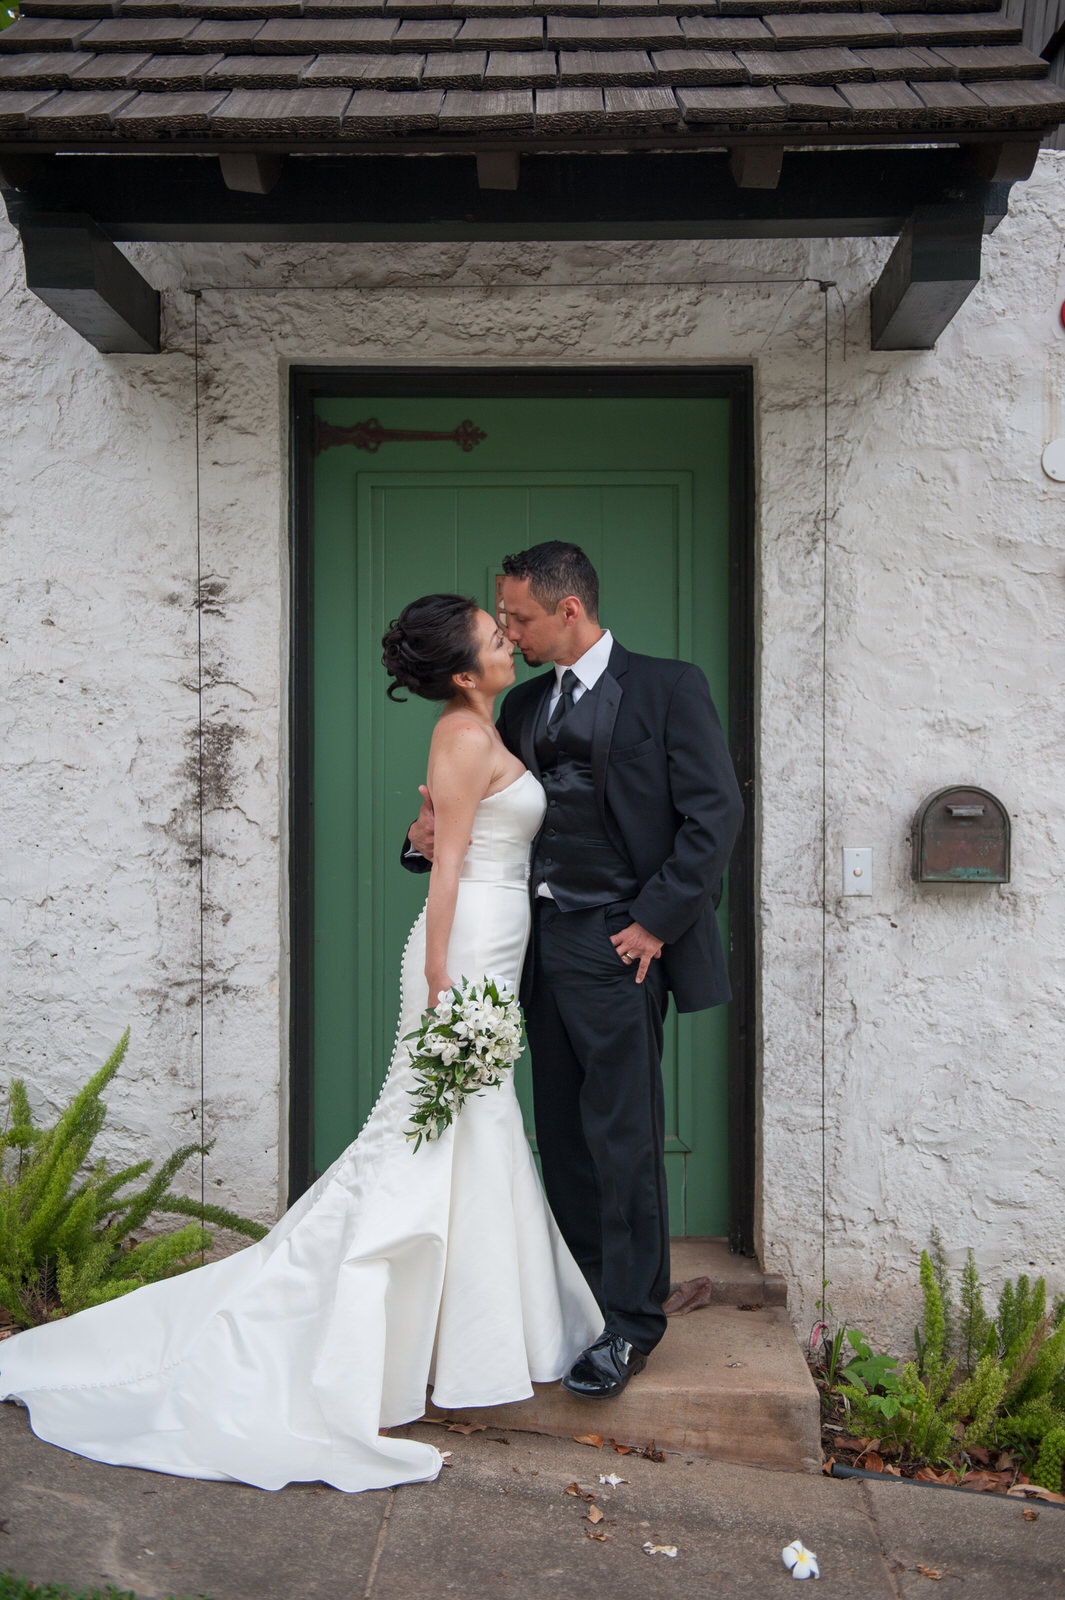 Bridal couple in front of green door